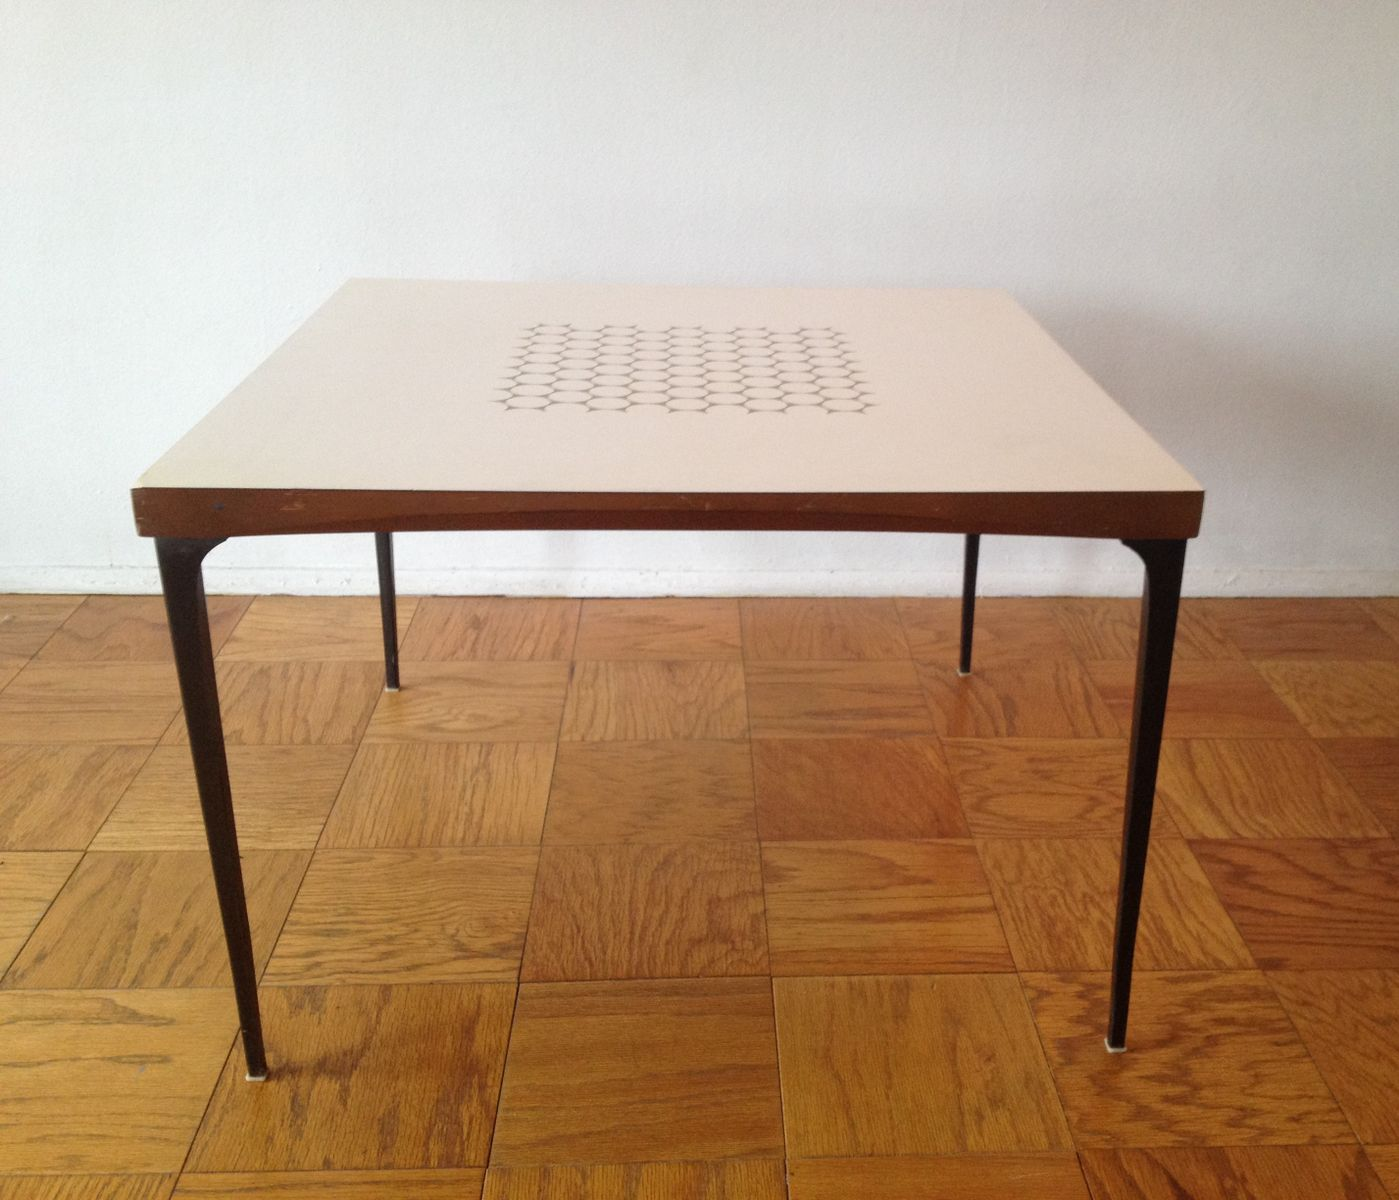 Heywood Retro Coffee Table: Coffee Table From Heywood-Wakefield, 1960s For Sale At Pamono